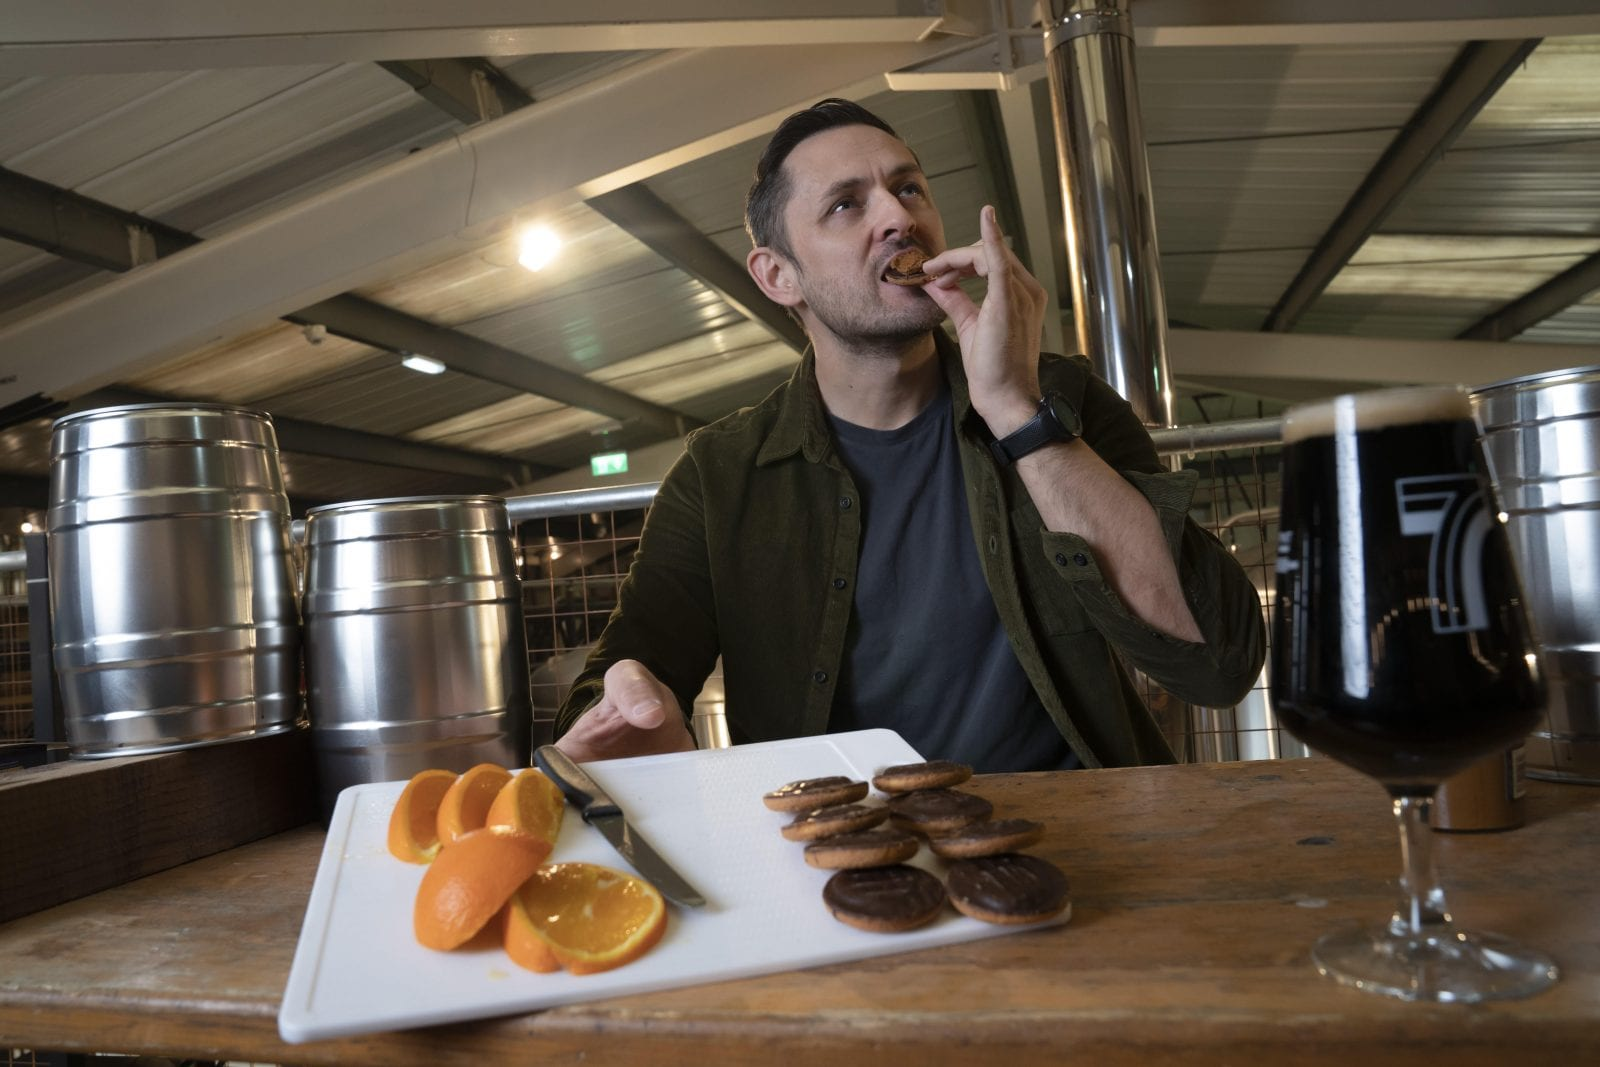 Seven Bro7hers launches 'Peanut Butter on a Jaffa Cake' beer, The Manc